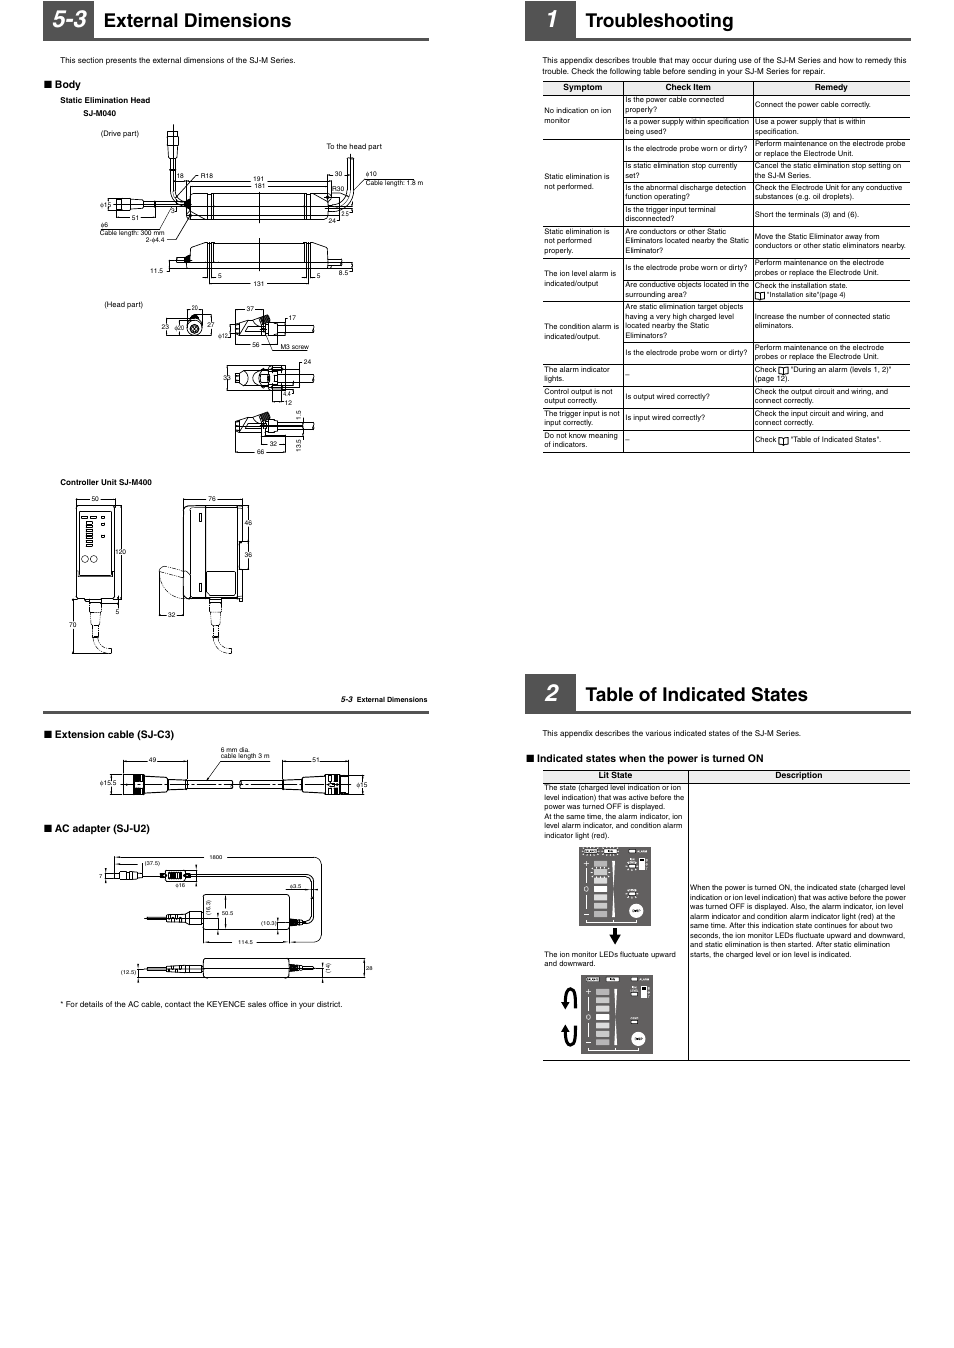 3 external dimensions, 1 troubleshooting, 2 table of indicated states    KEYENCE SJ-M400 User Manual   Page 11 / 14